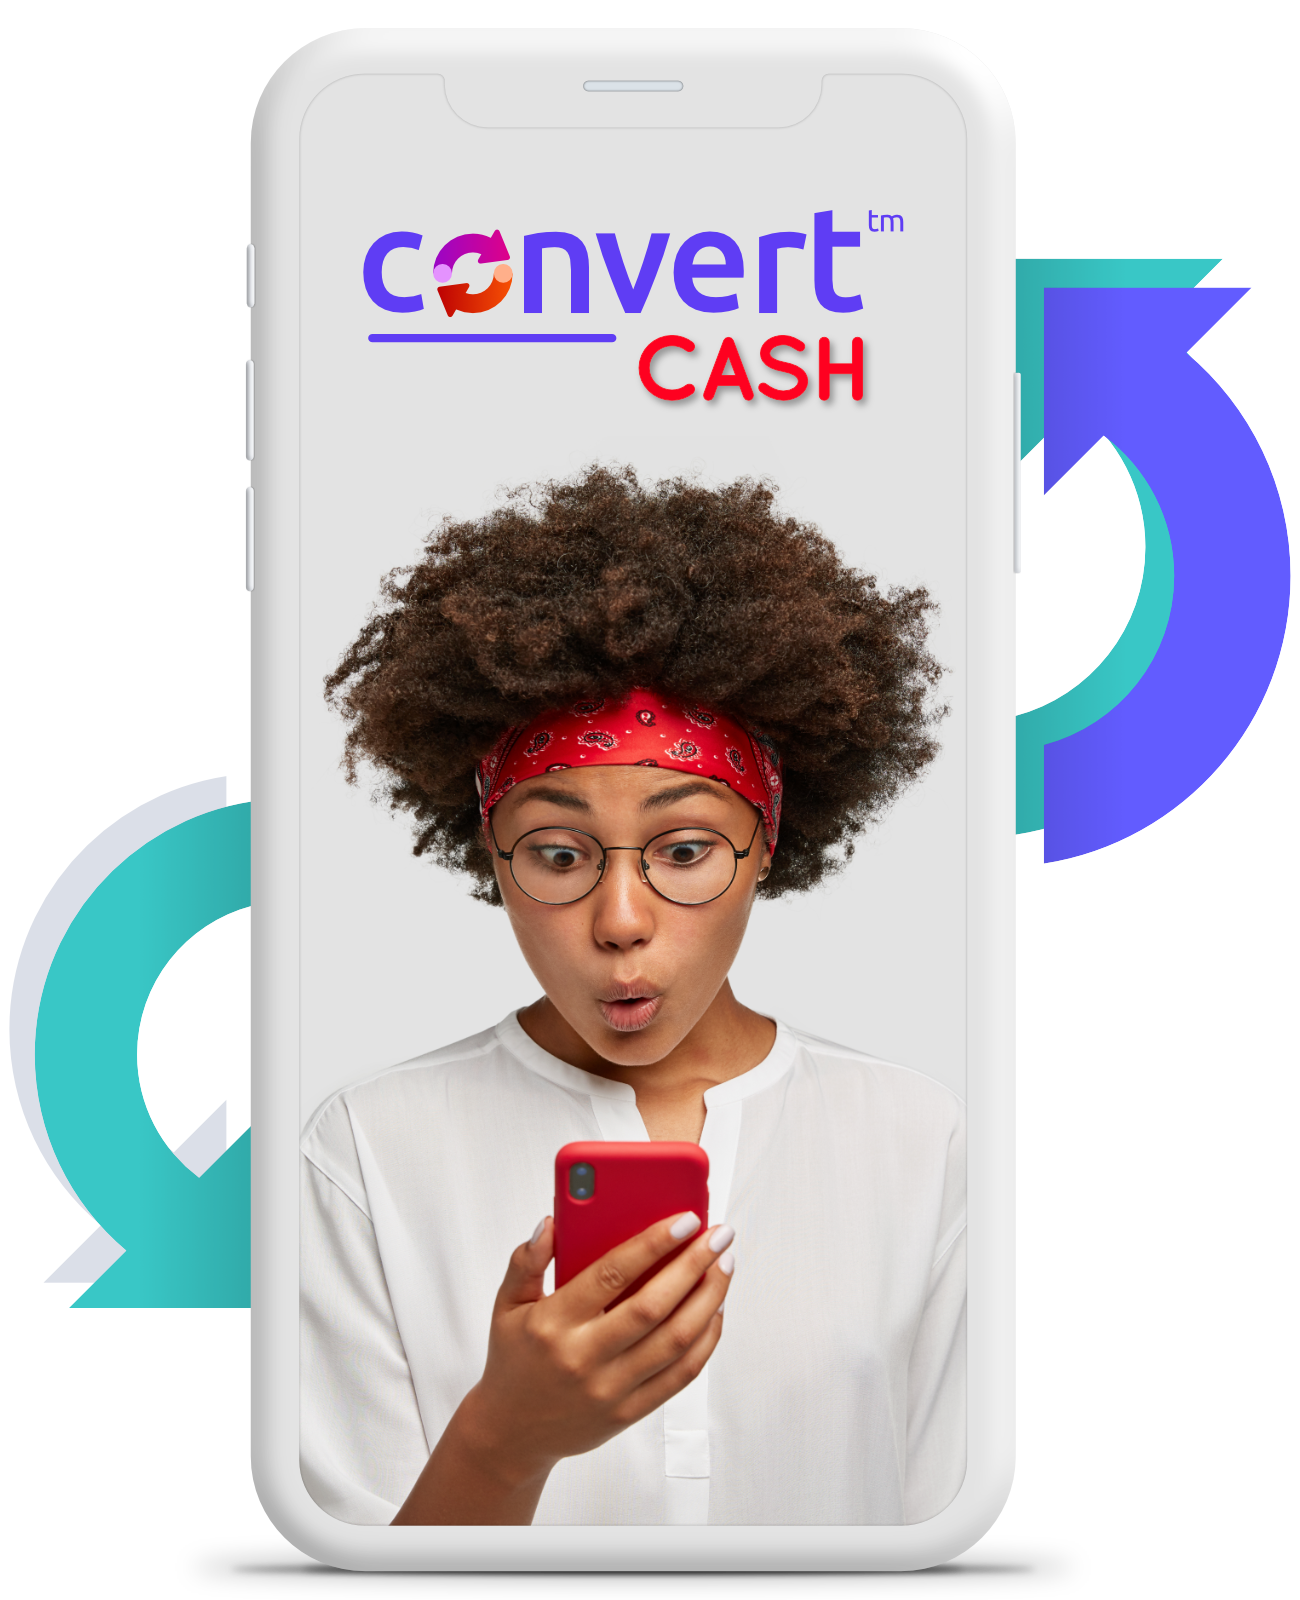 Convert Cash - mobile image